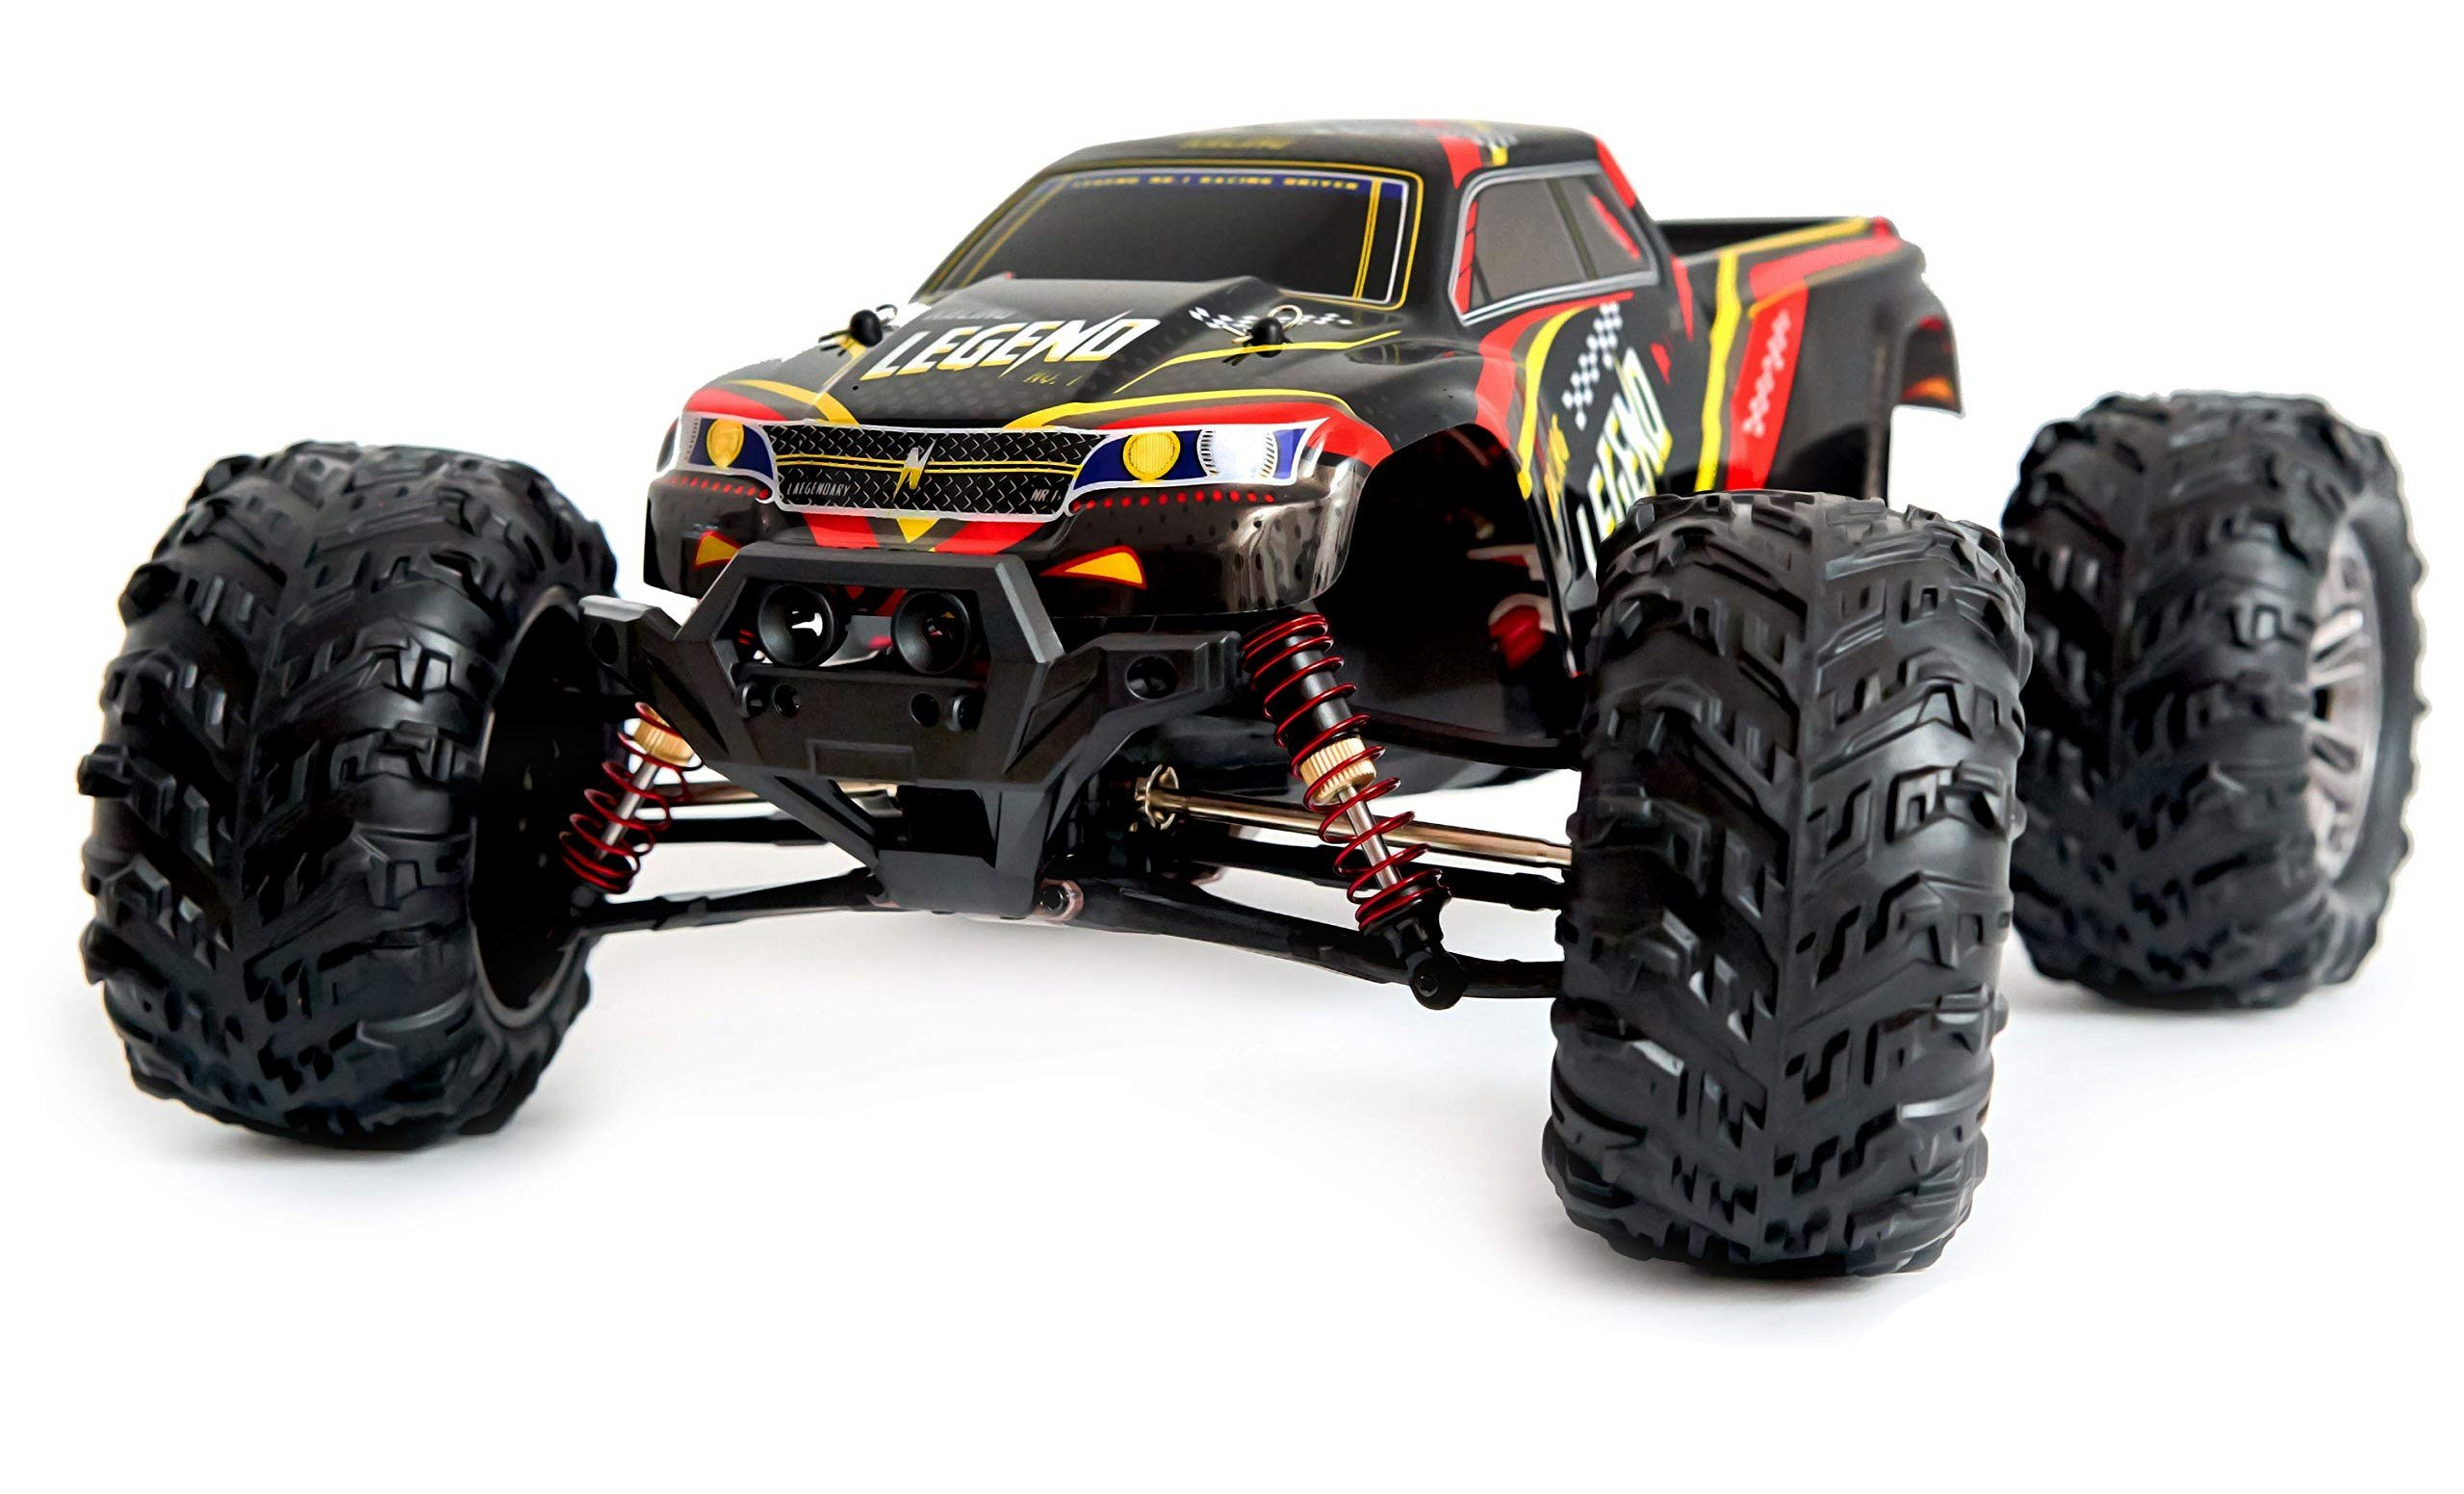 Laegendary Large Scale RC Electric Off Road Monster Truck review